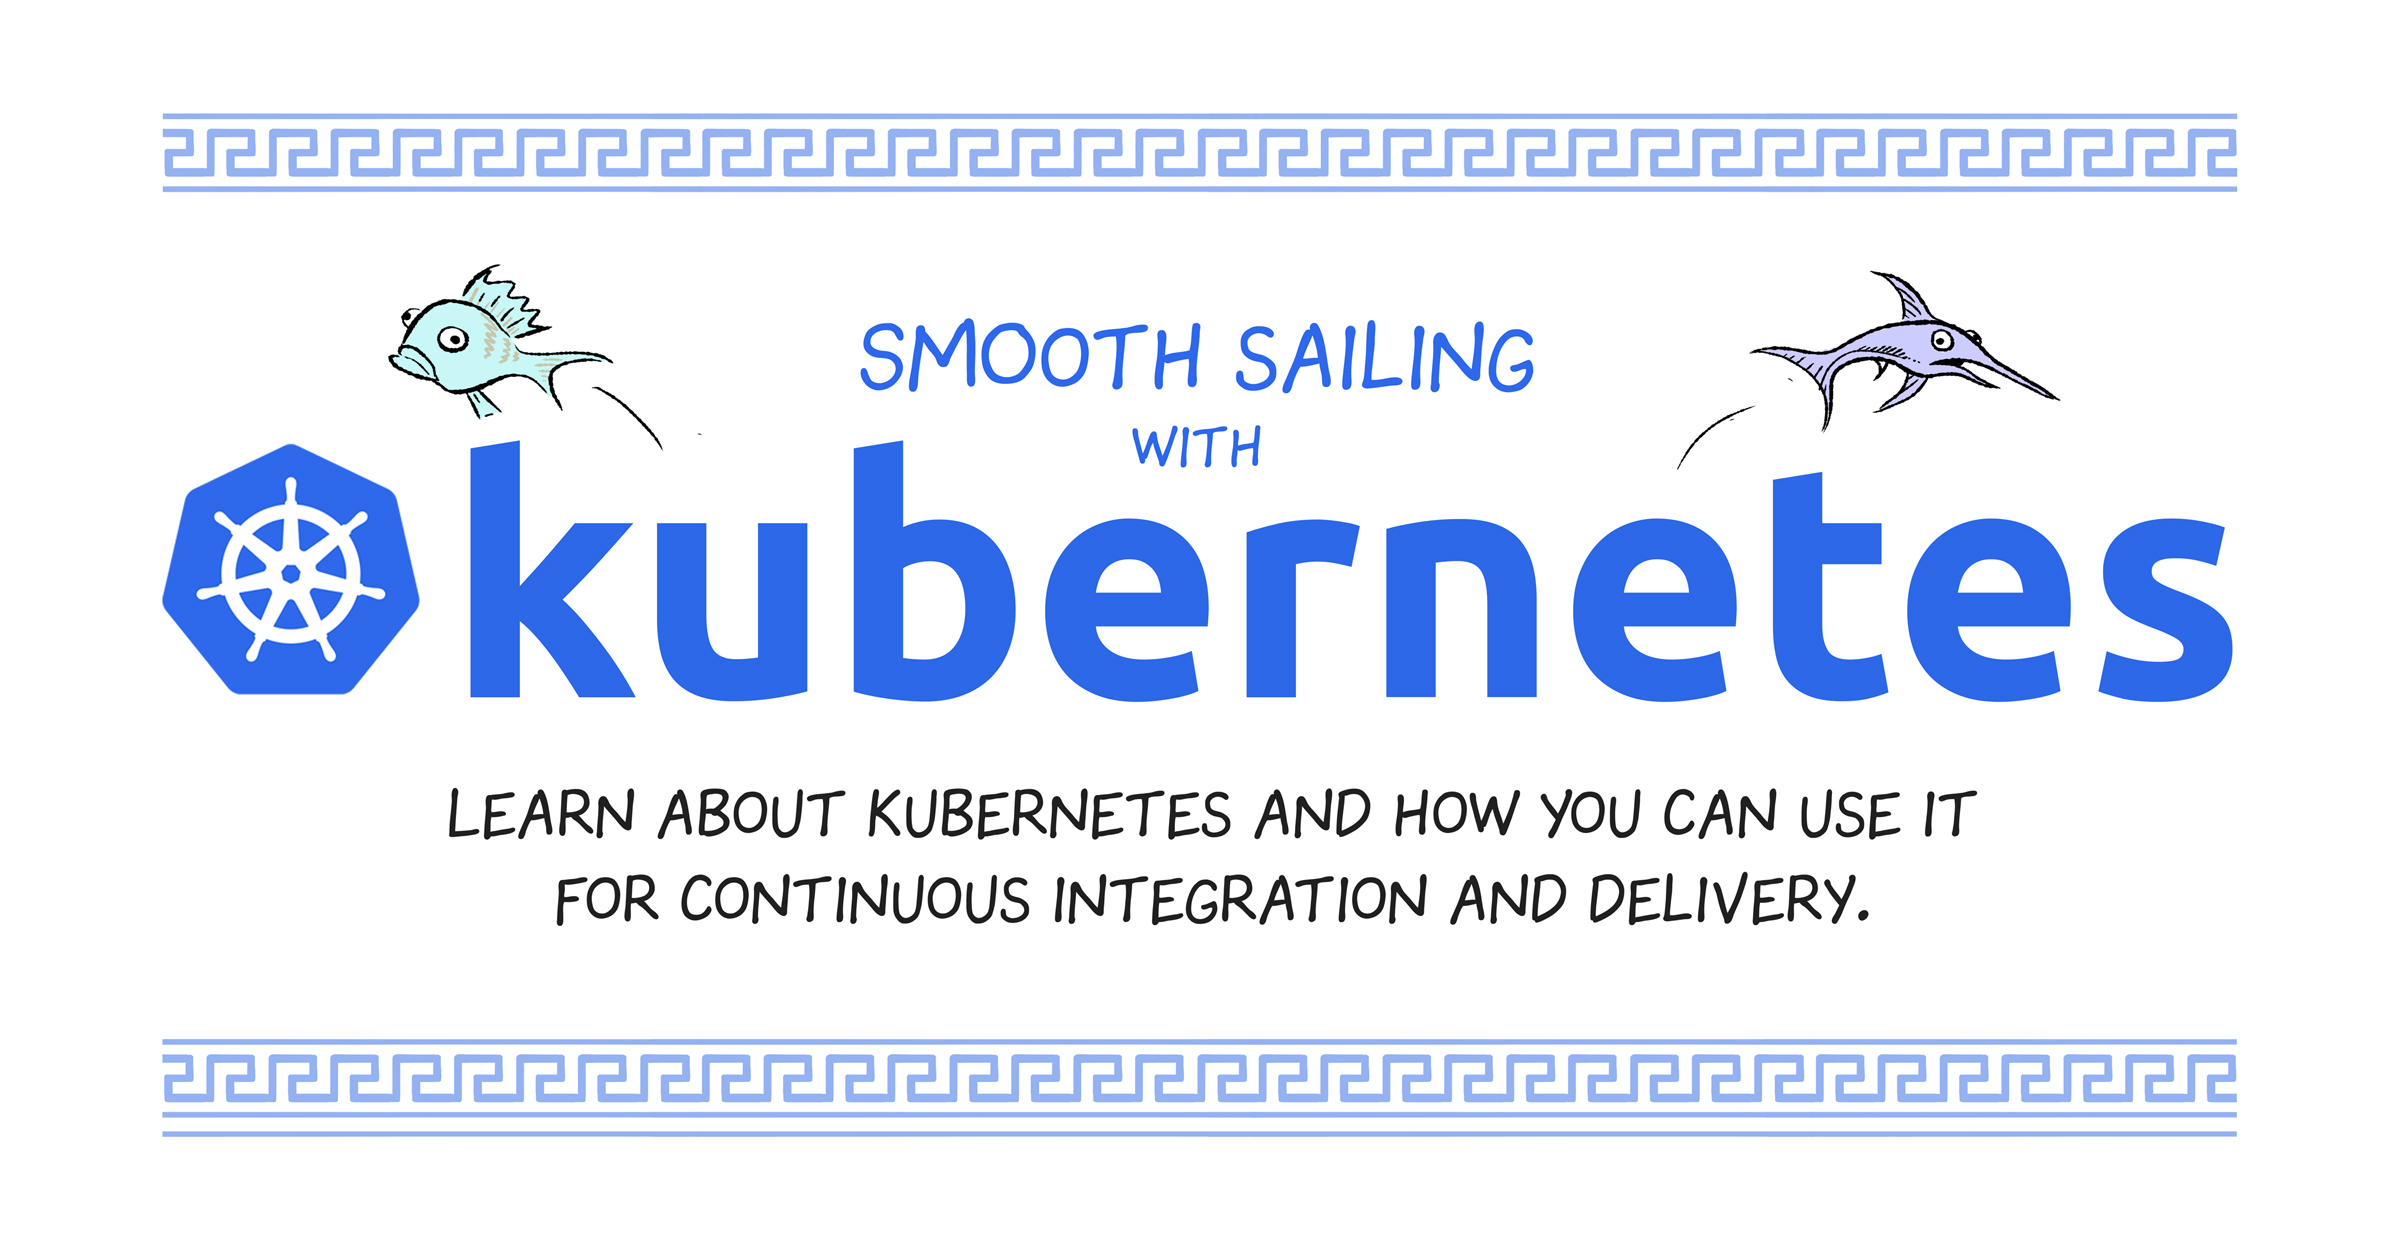 How to Learn Kubernetes - The Best Tutorials, Comics, and Guides